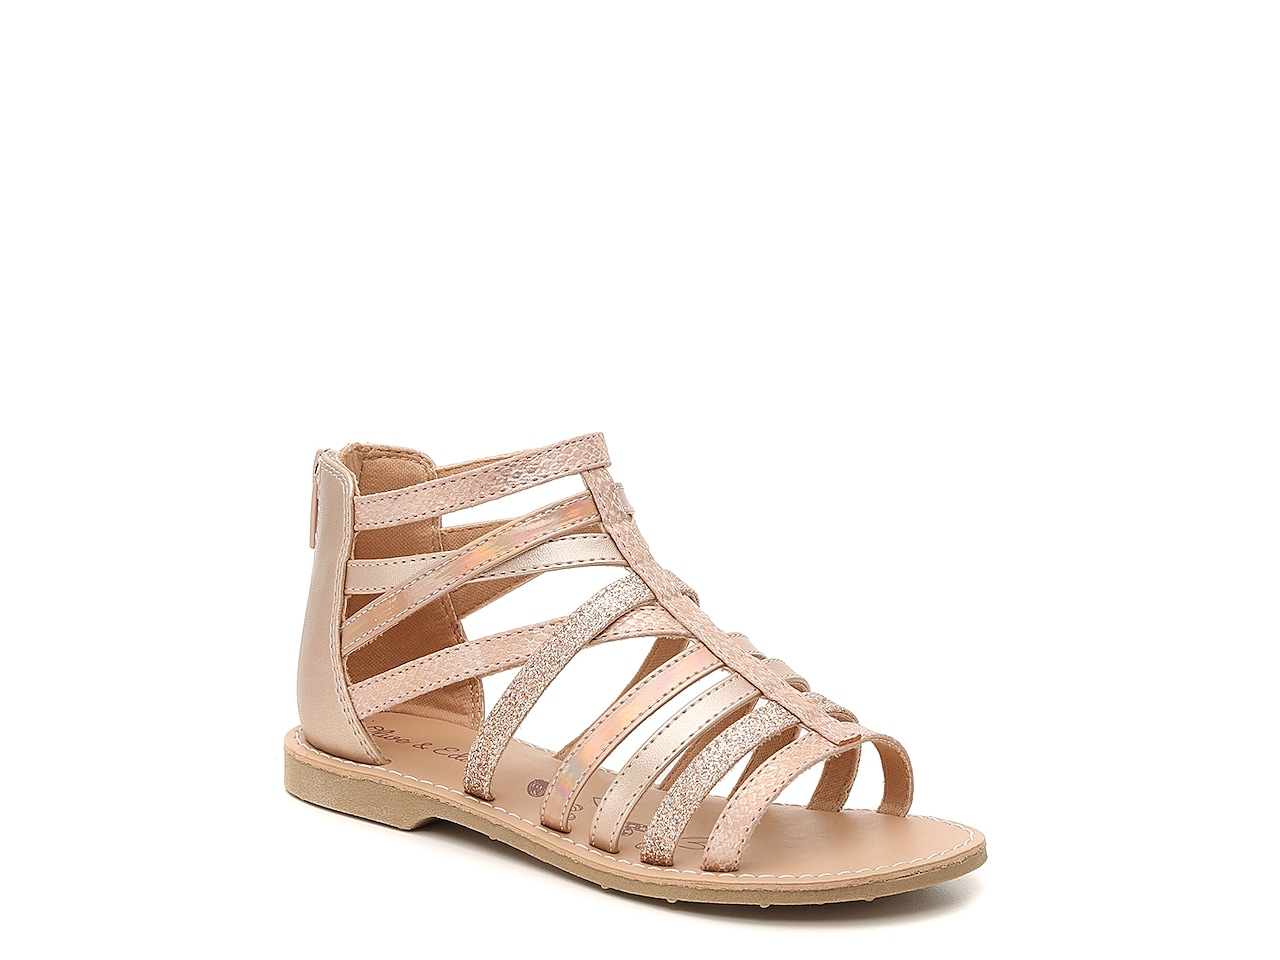 Girls Sandals: Up to 50% off at DSW!